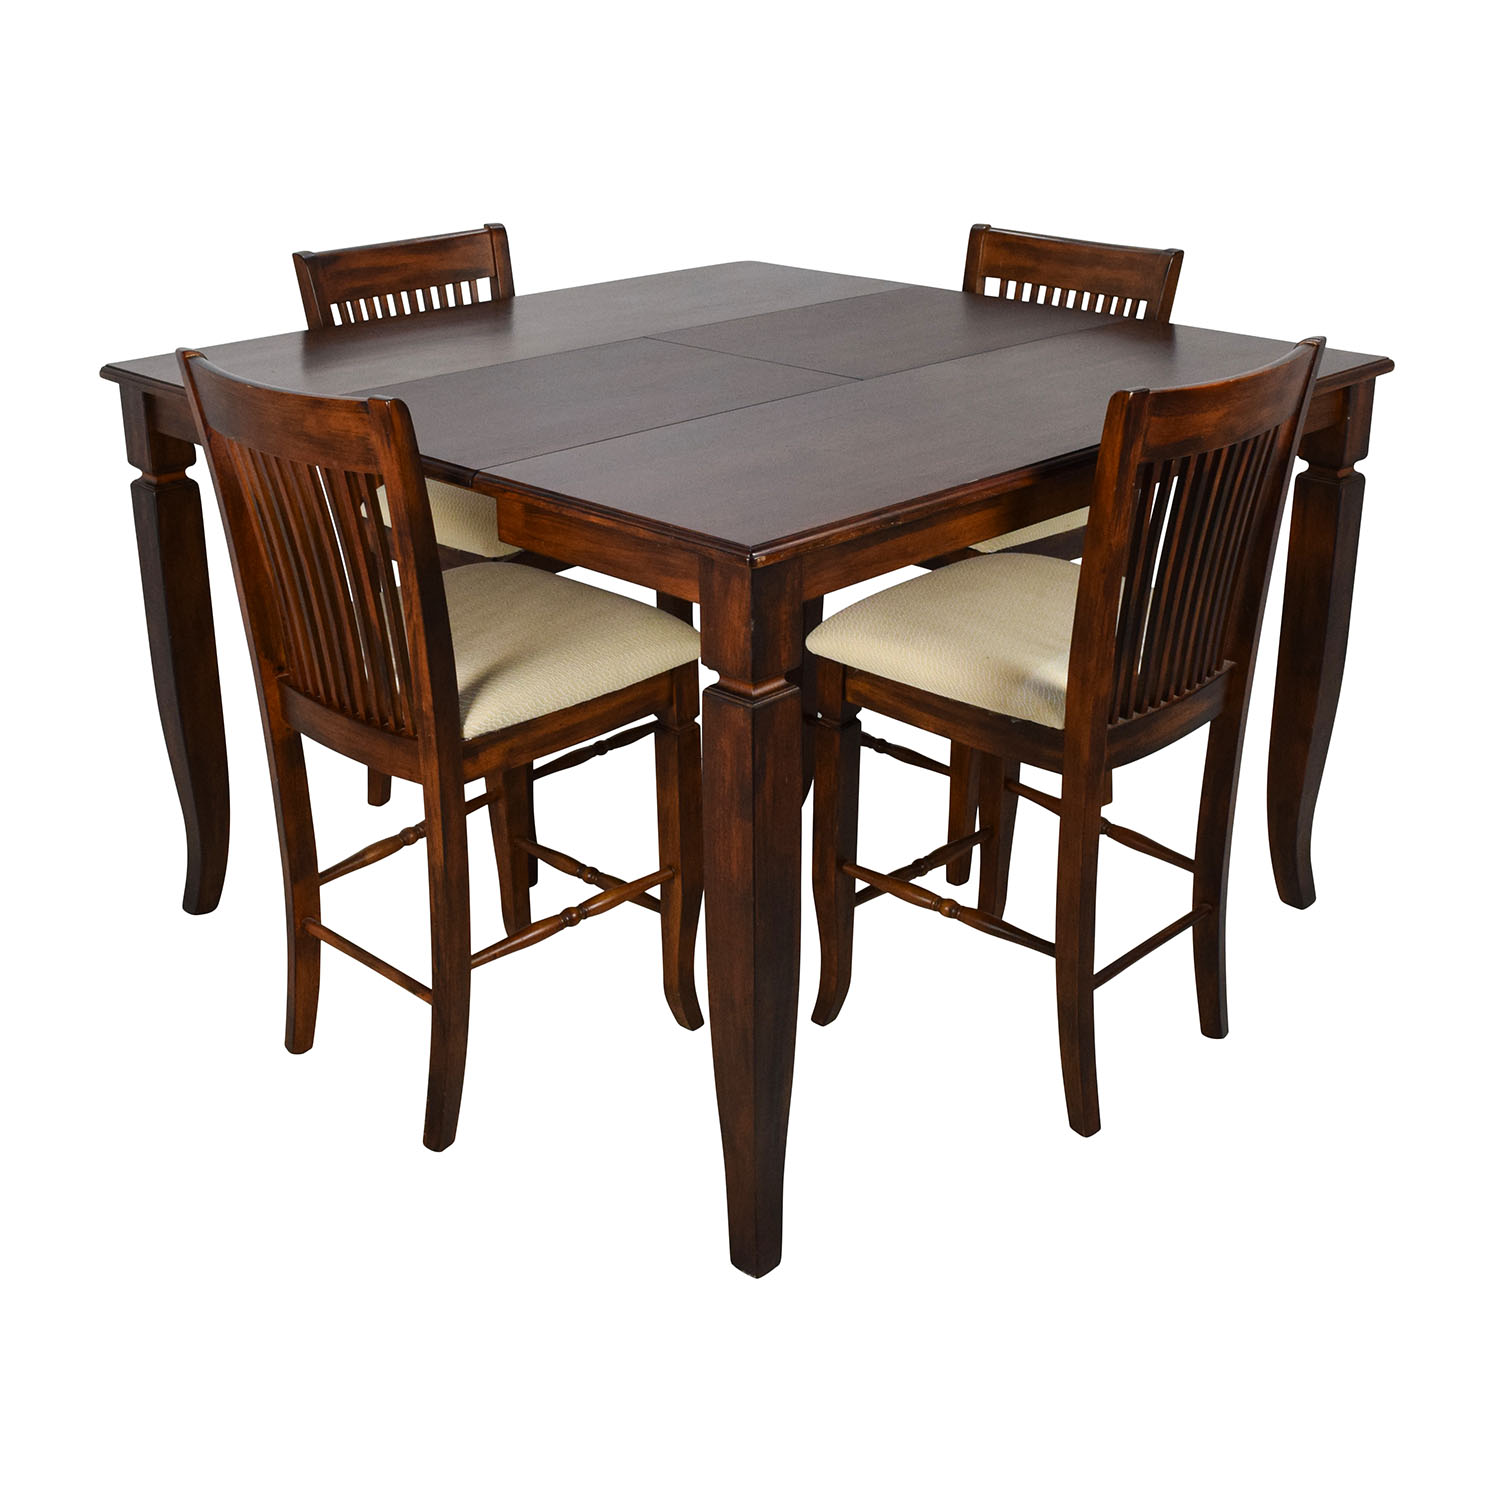 75 off tall extendable dining room table set tables for Dining room table sets